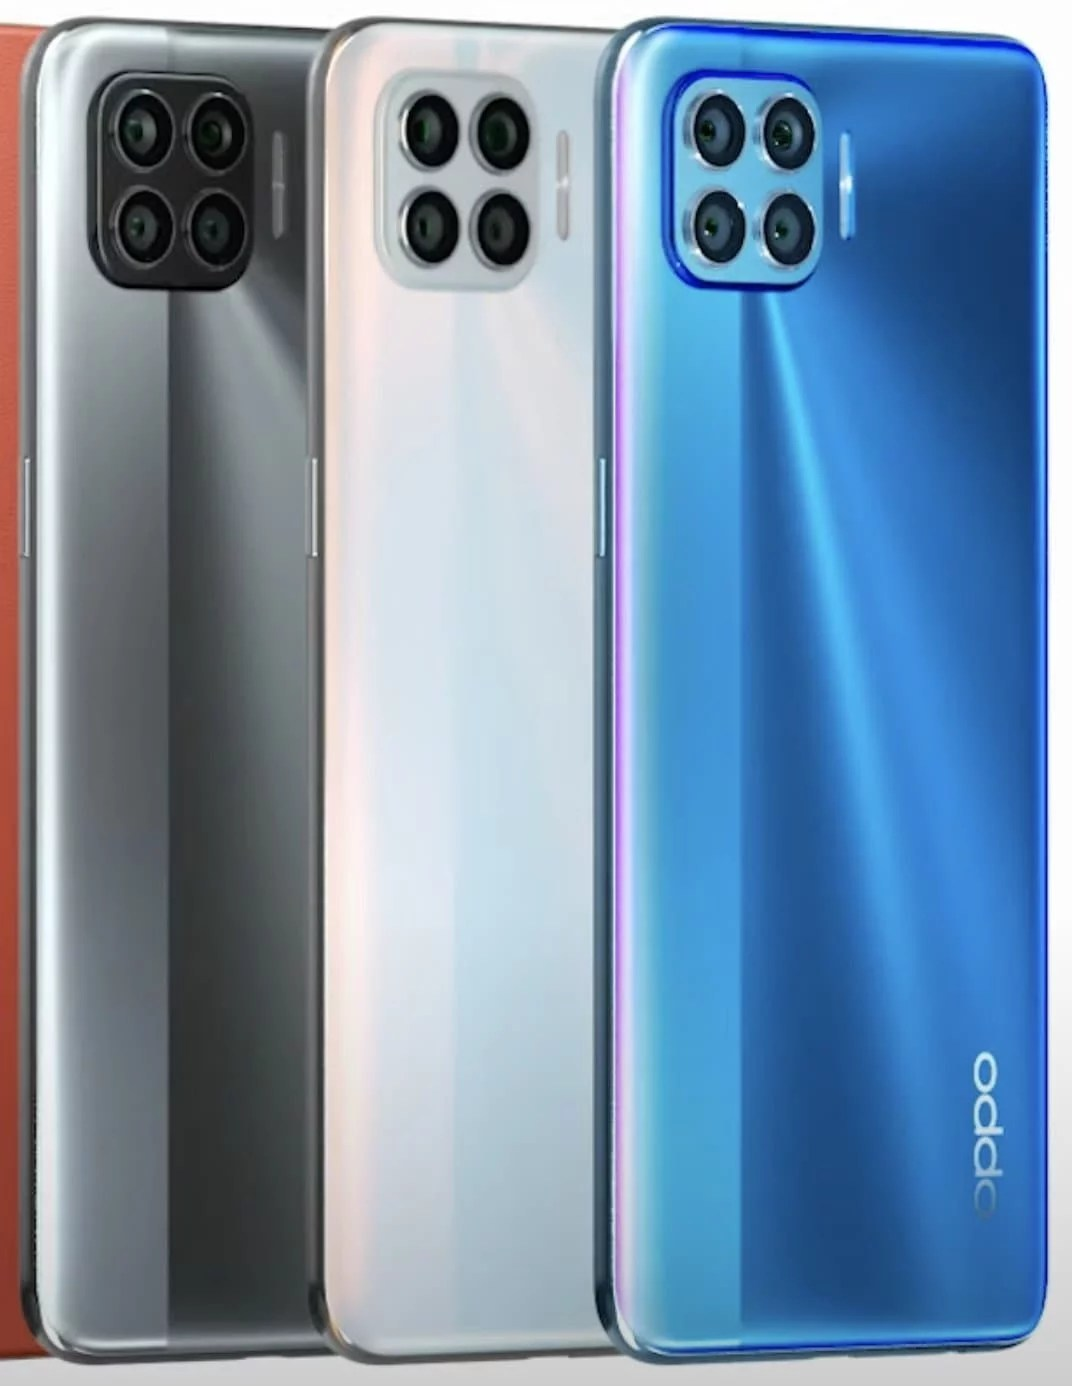 Oppo F17 Pro & Oppo F17 will launch soon in India likely in september month. Now ahead of launch its full specs & features are revealed having sAMOLED display,